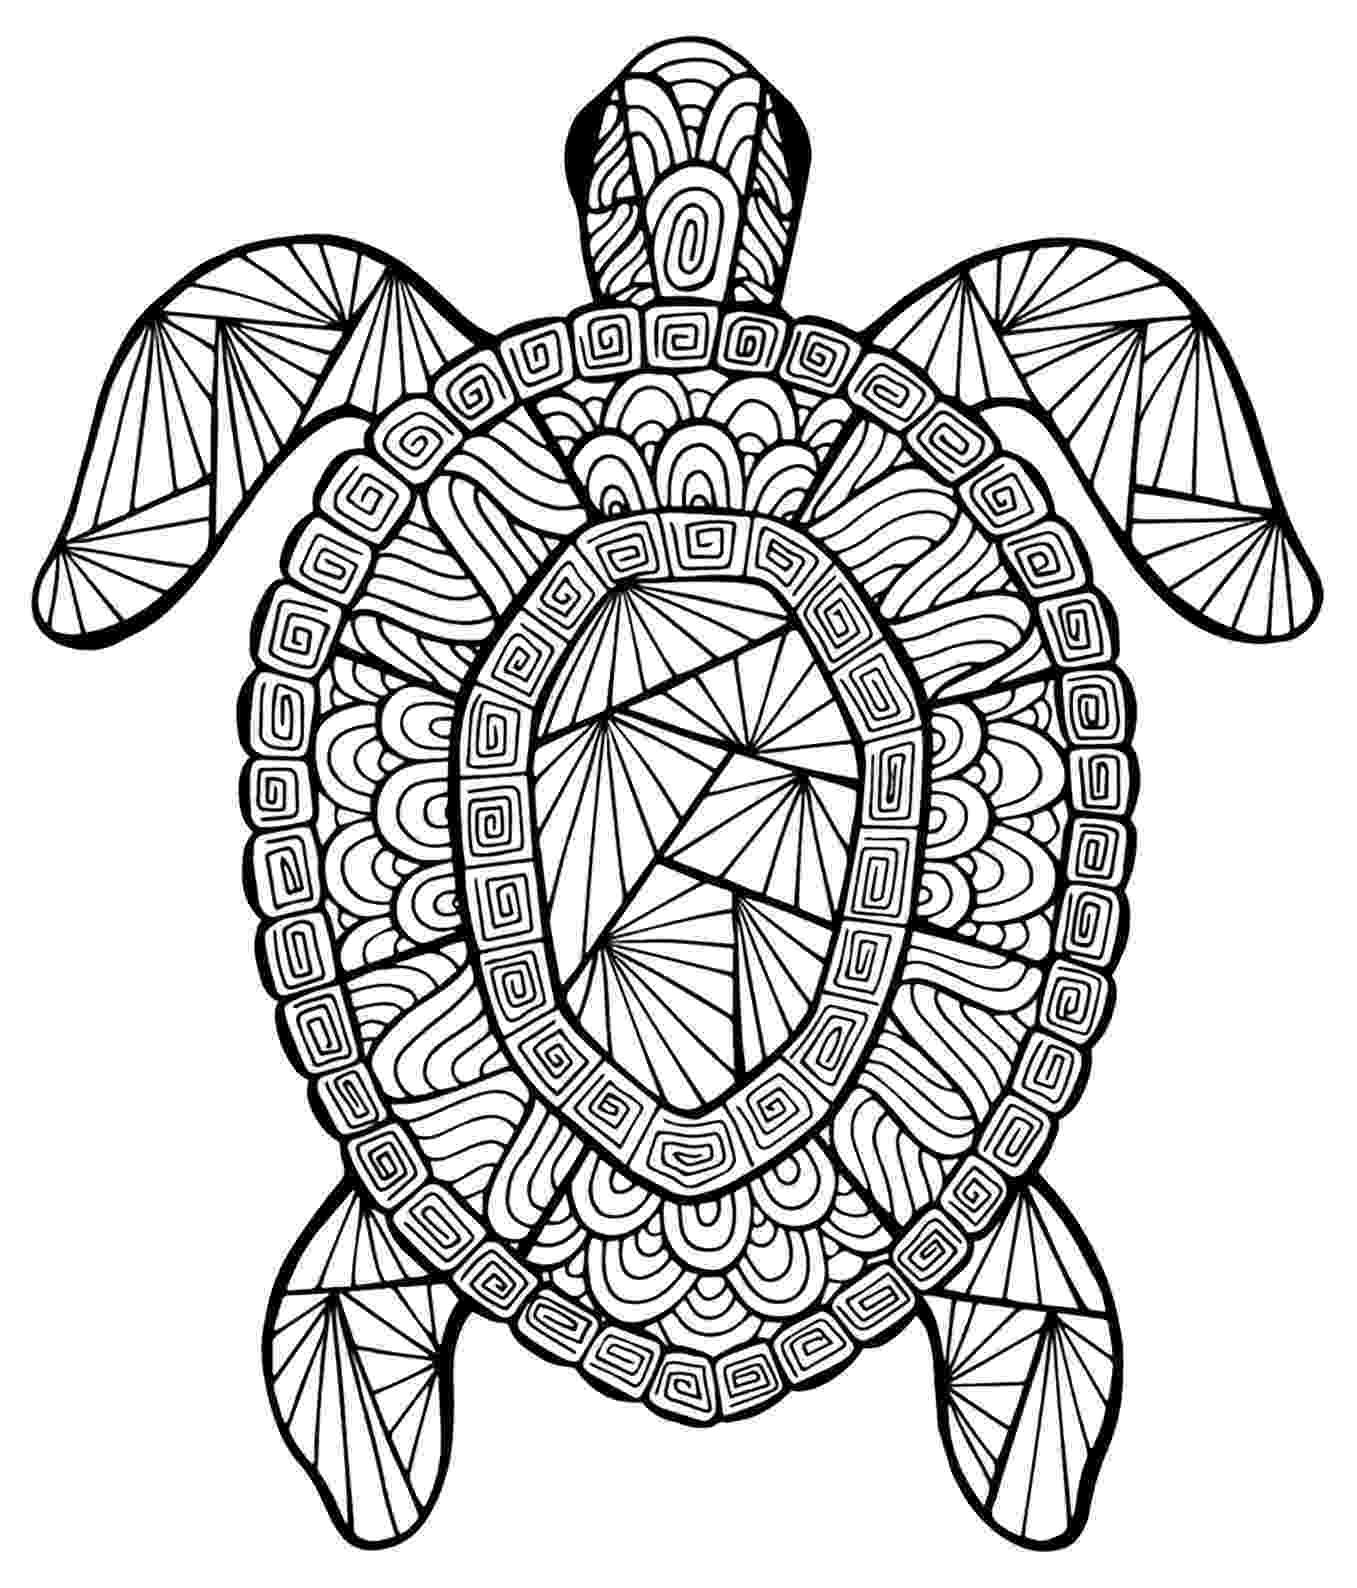 turtle coloring book instant download coloring page turtle zentangle by rootsdesign coloring turtle book